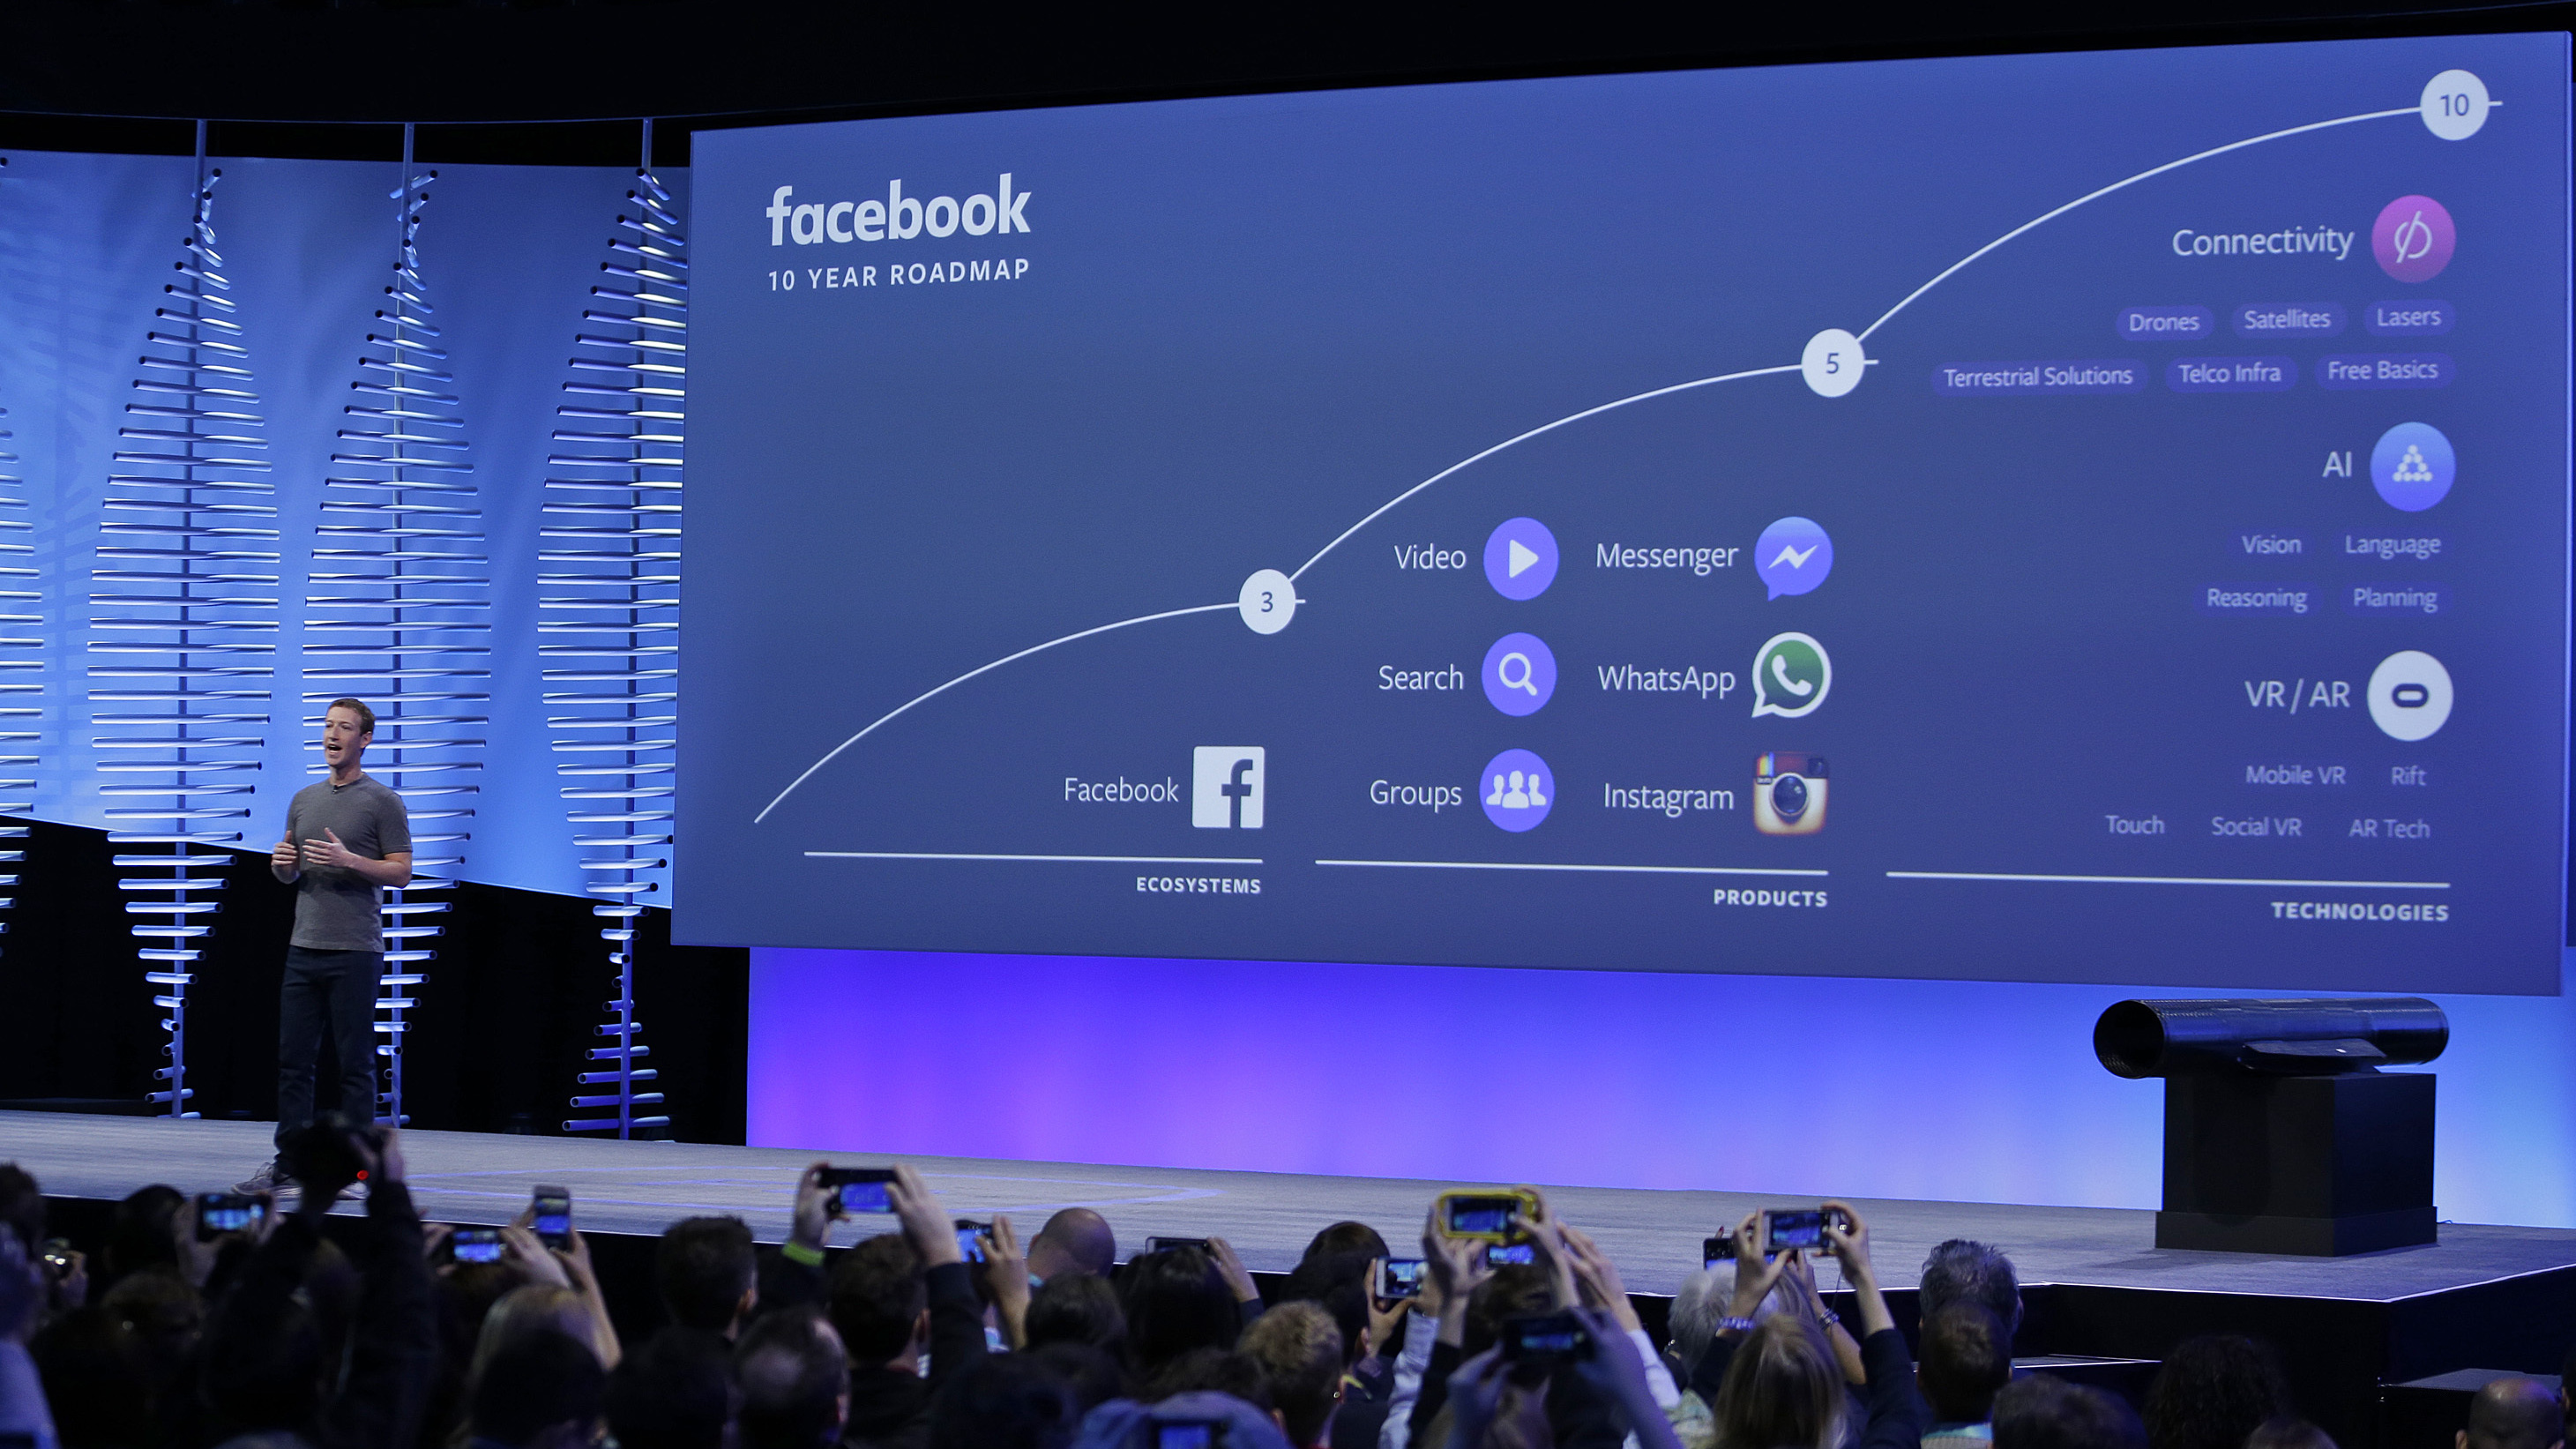 Facebook's New Master Plan: Kill Other Apps